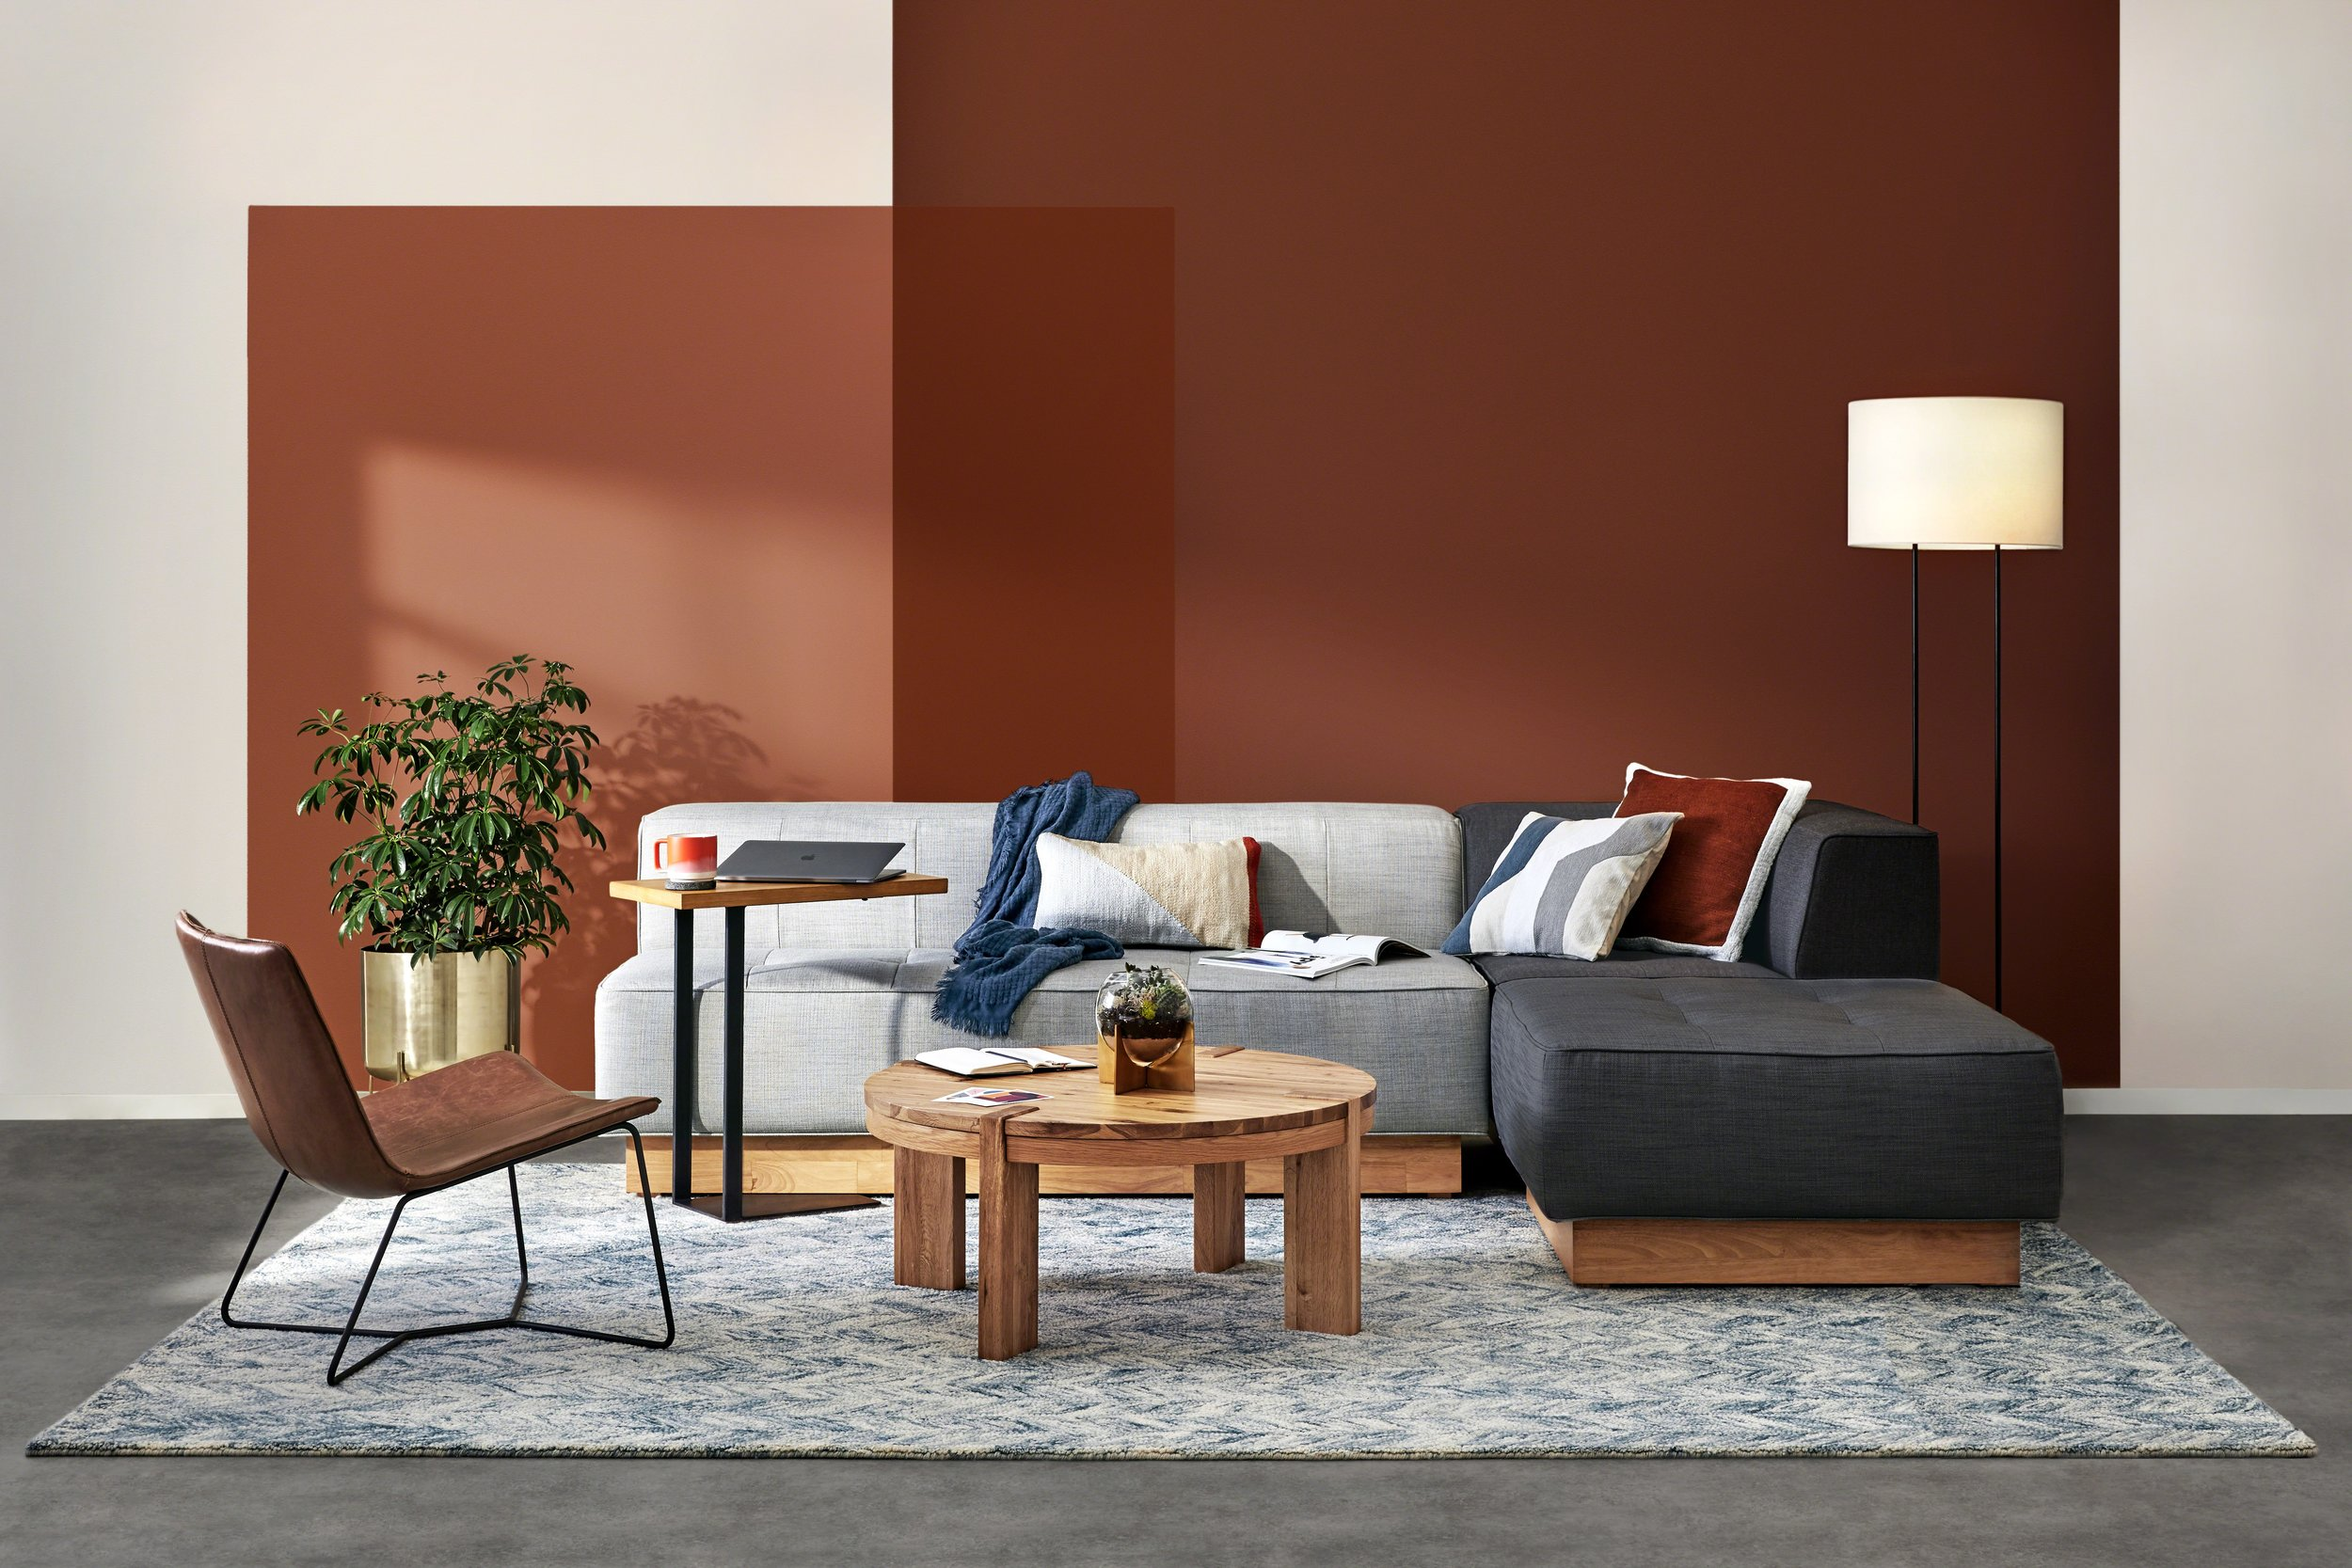 Styling + Art Direction for West Elm Work Collection Photographer: Jeremy Frechette